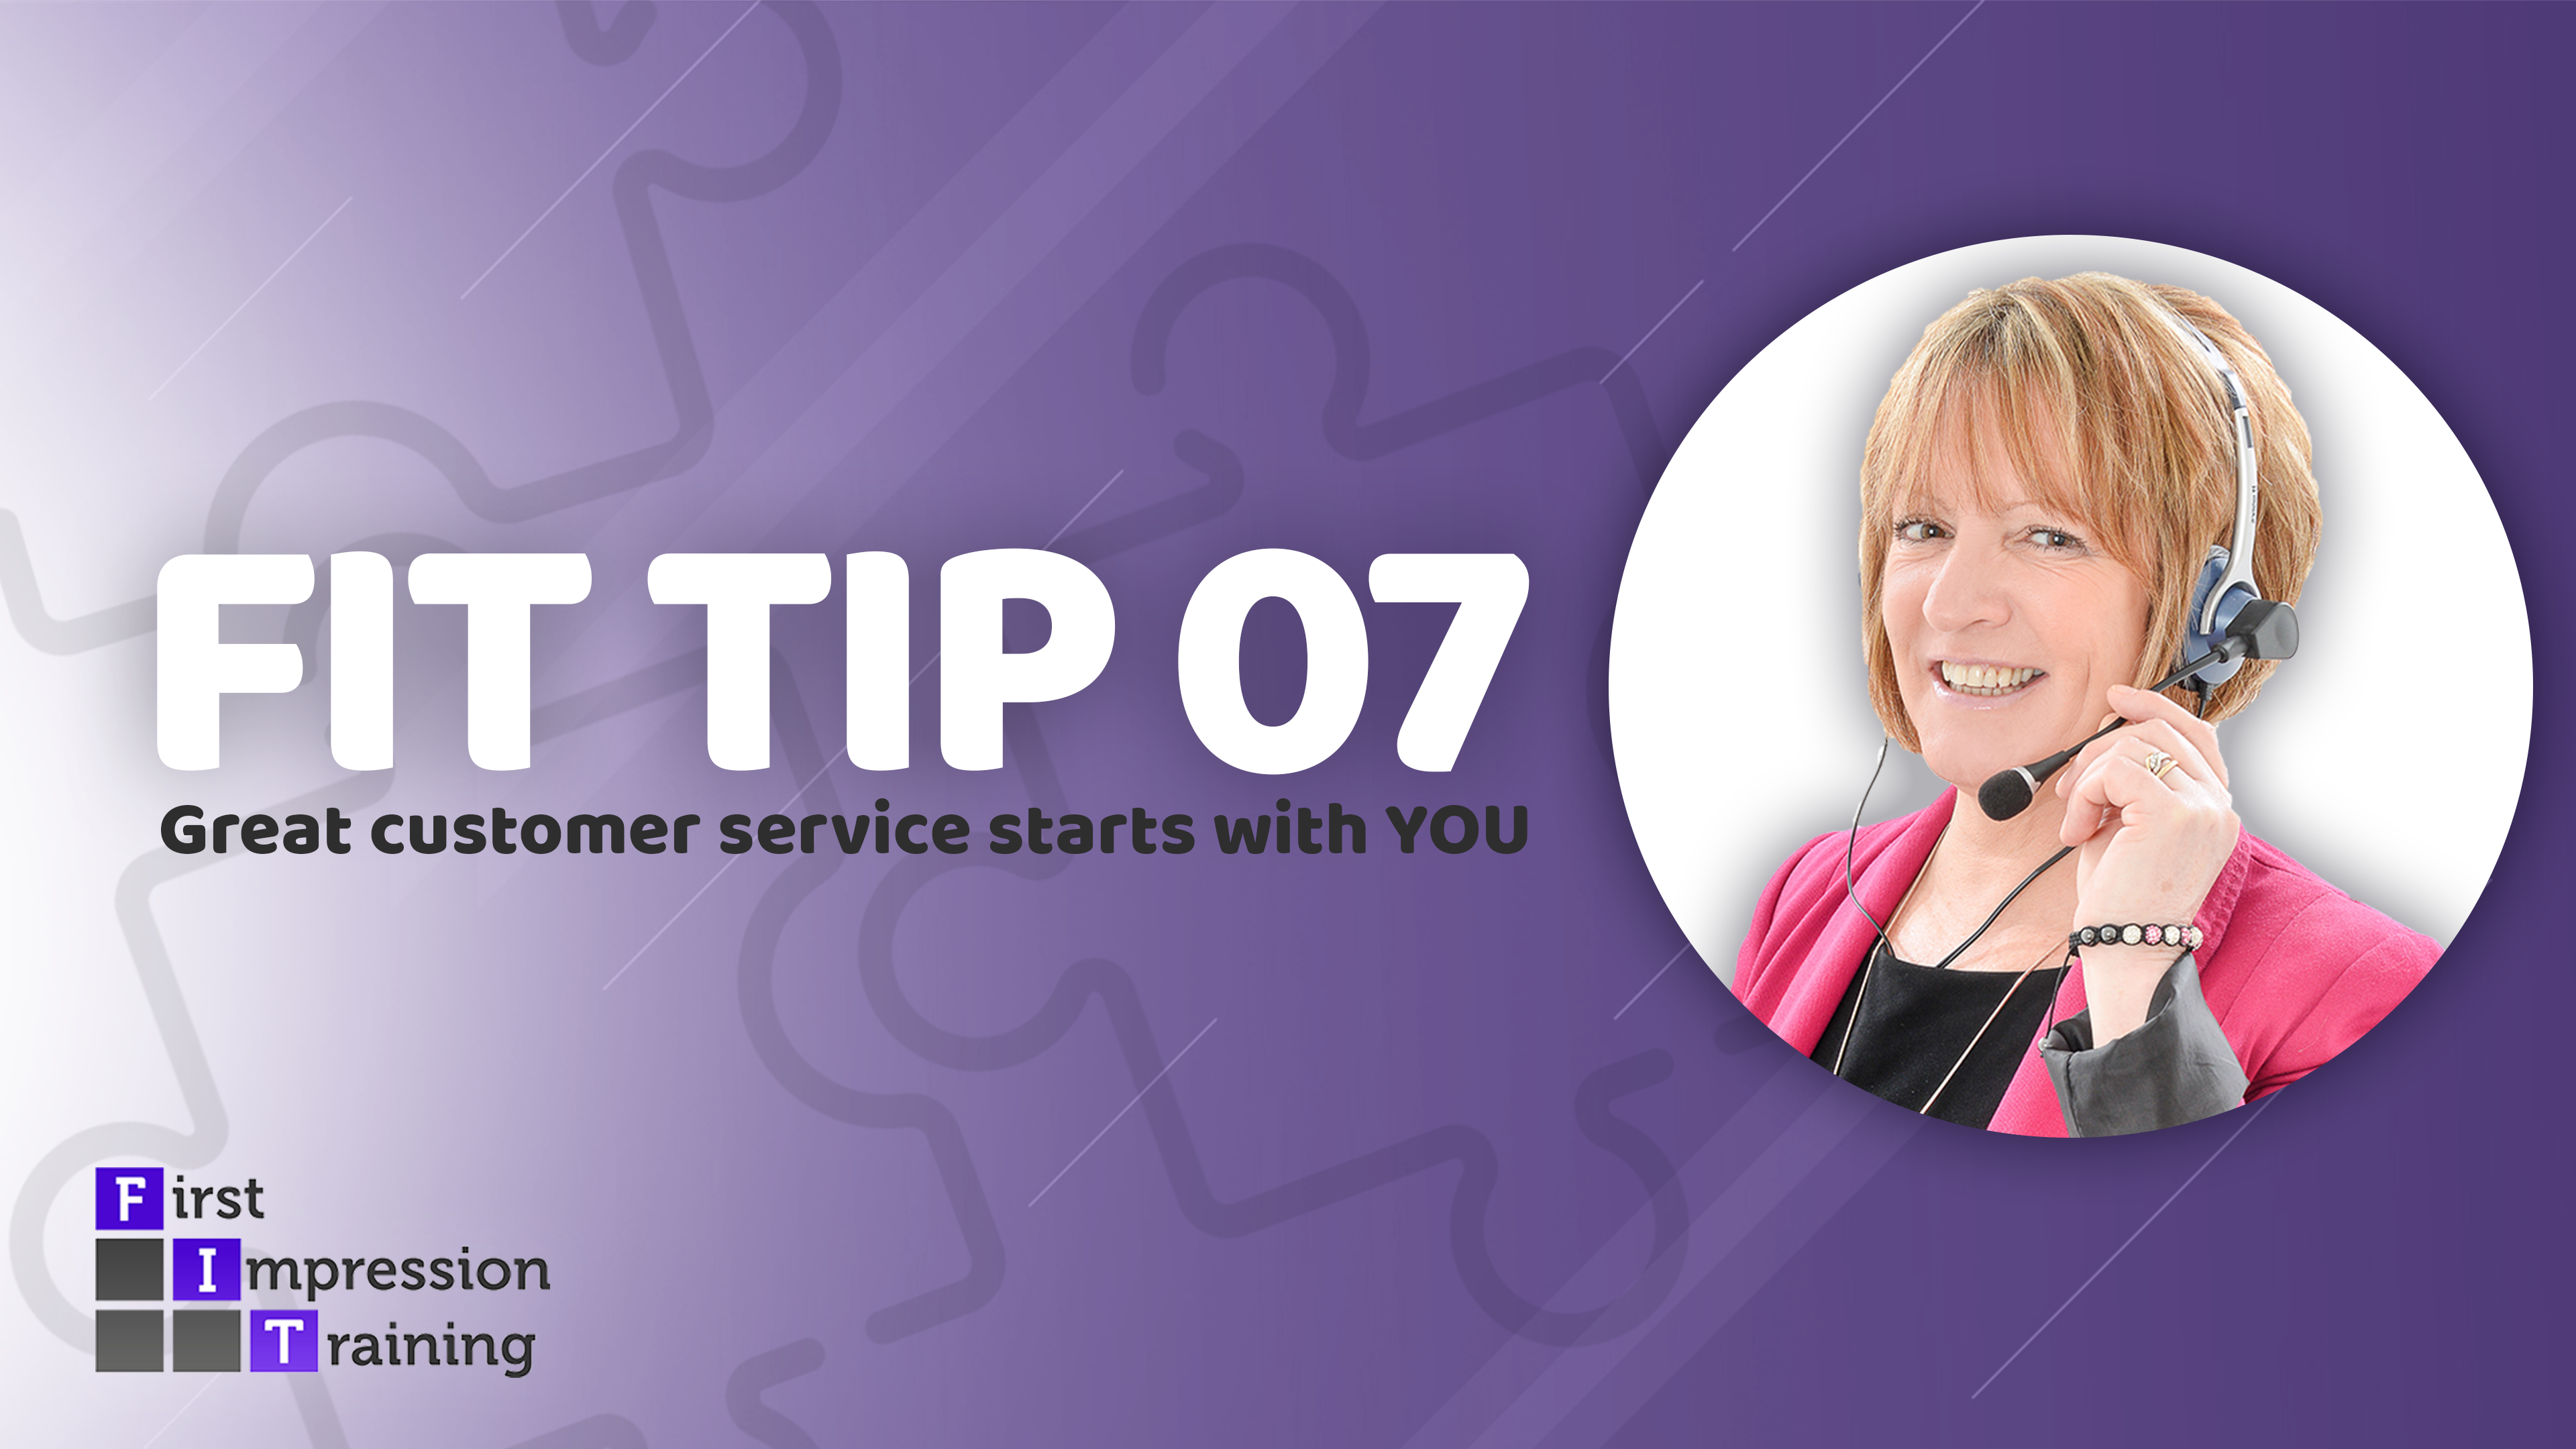 Great customer service starts with YOU!